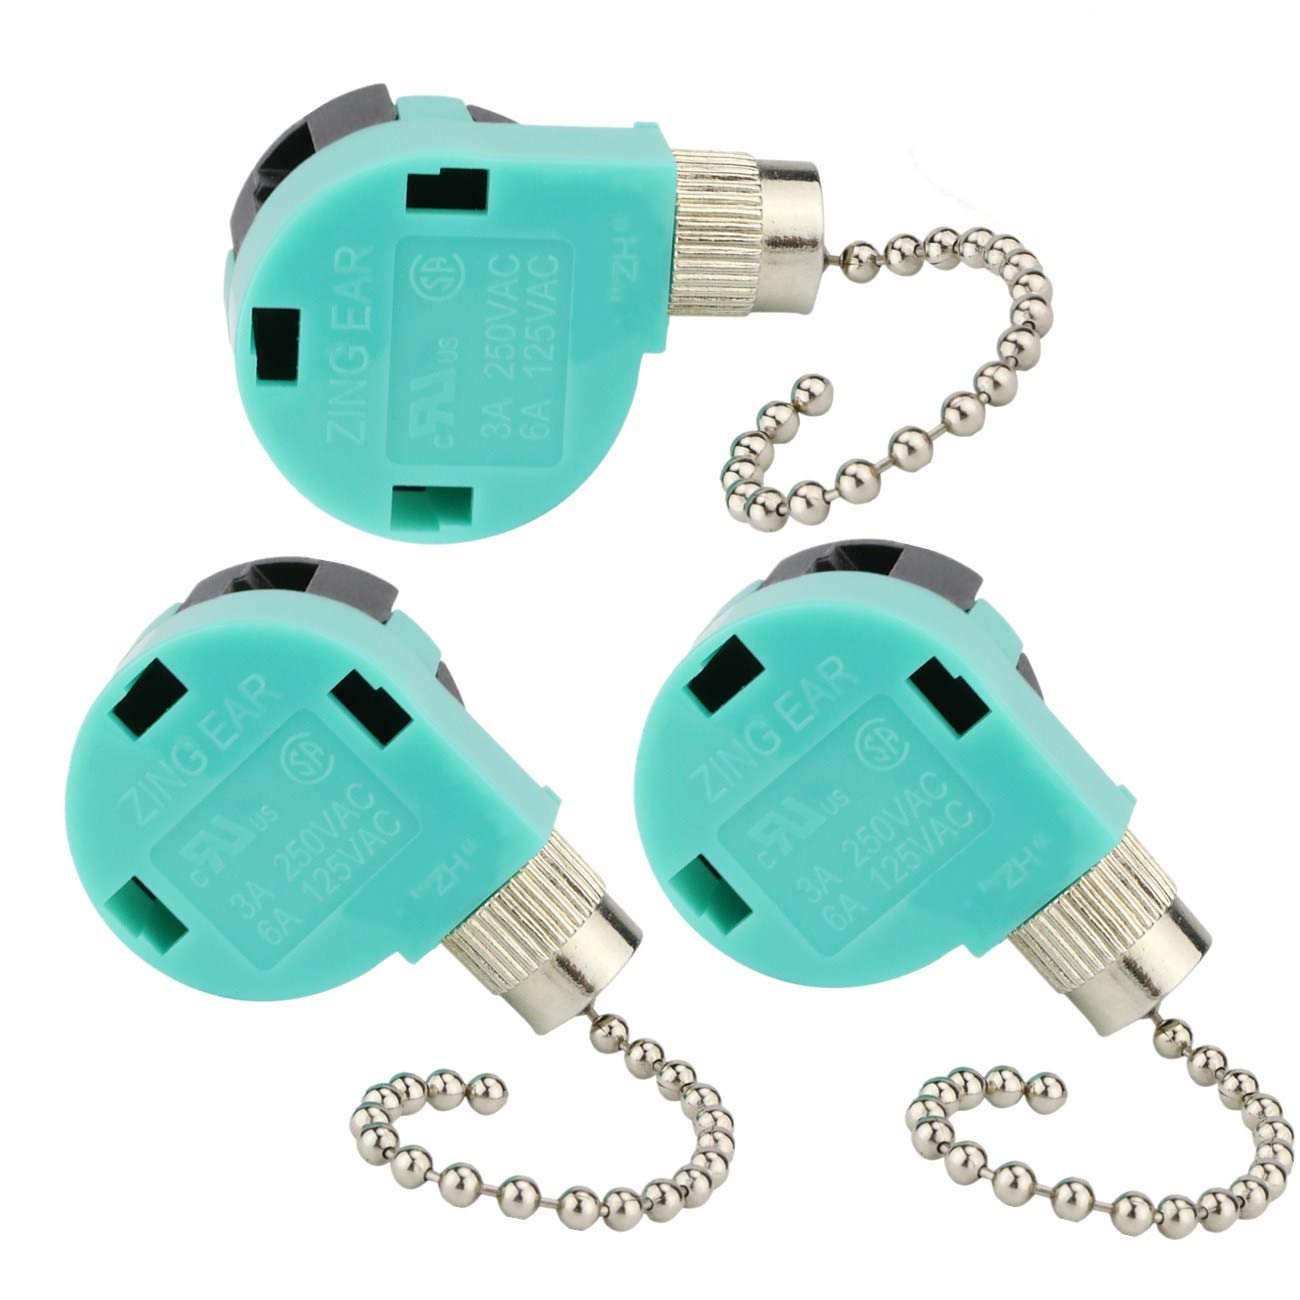 Zing Ear Ceiling Fan Switch 3PACK ZE-268S6, Switch 3 Speed 4 Wire Pull Chain Control Ceiling Fan Replacement Speed Control Switch by Dayone